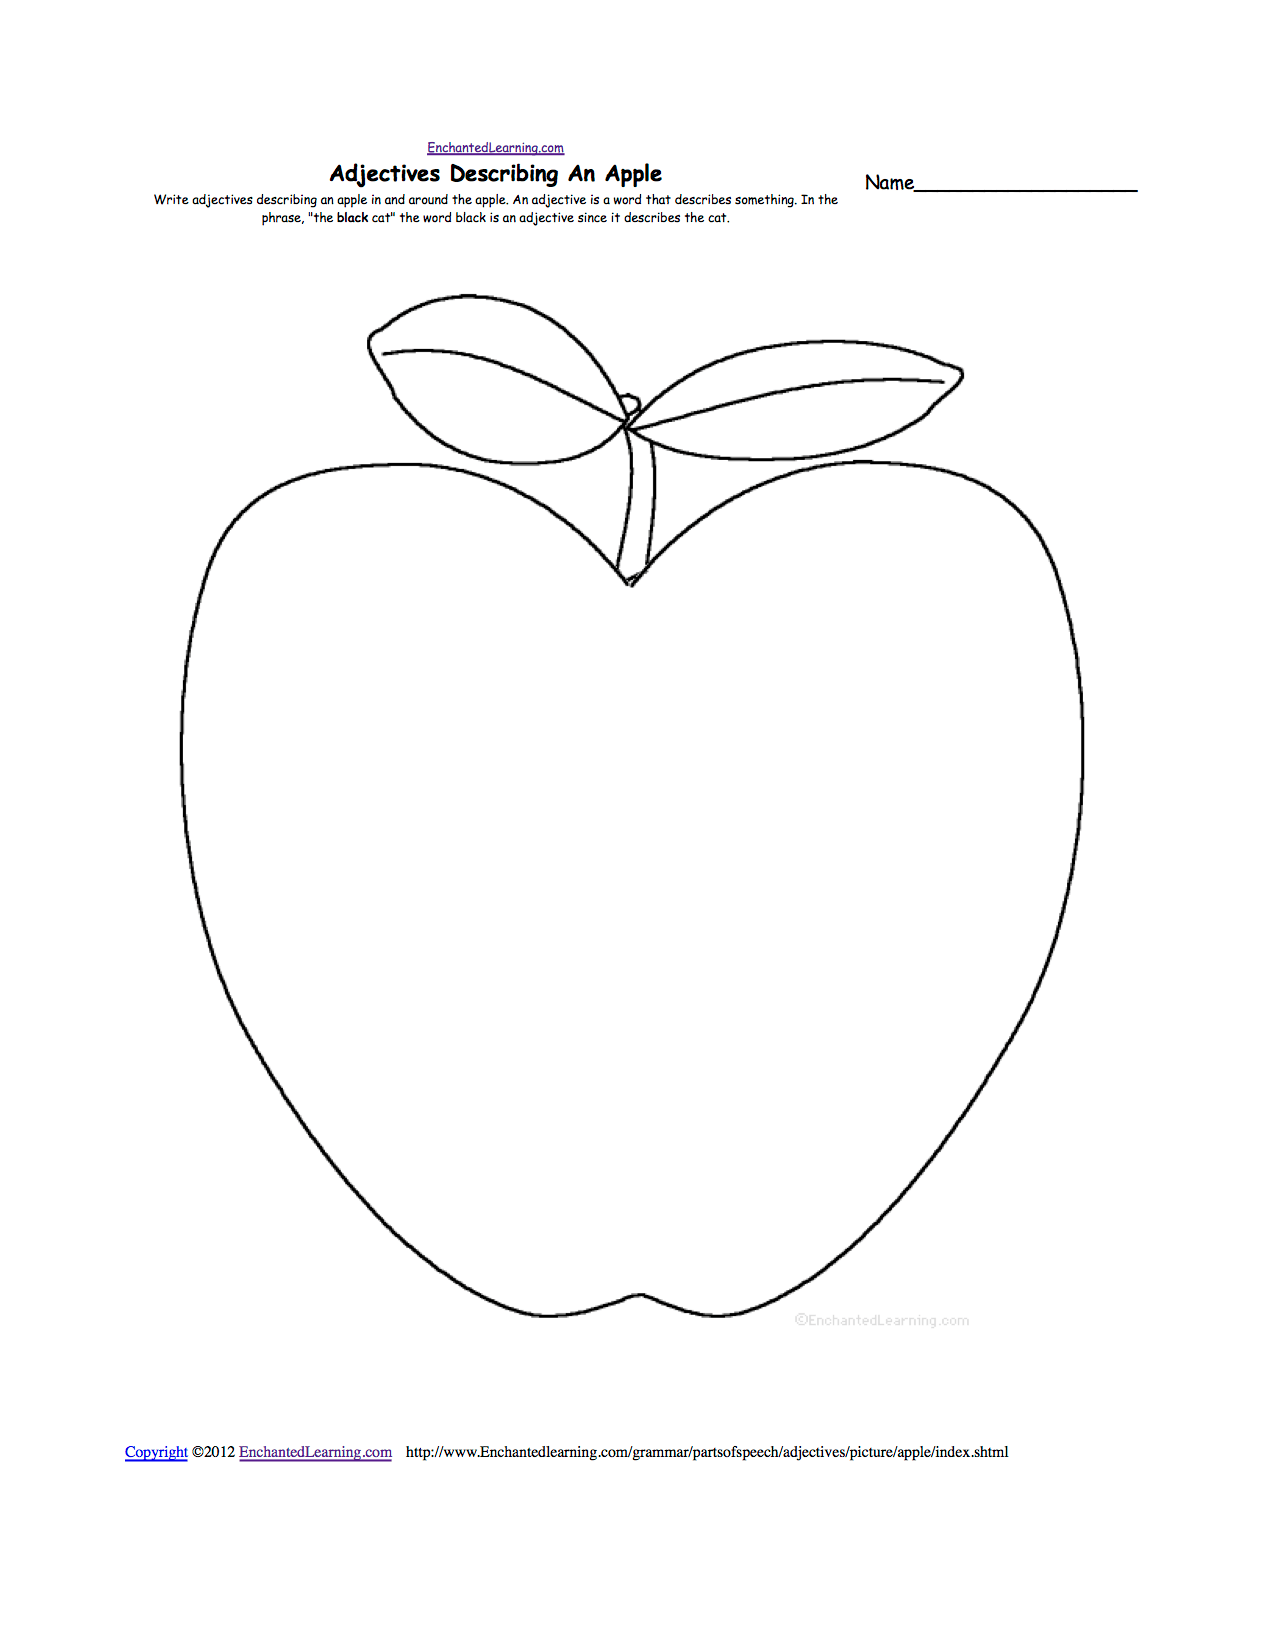 Sketches Of Apple Drawing For Kindergarten Student